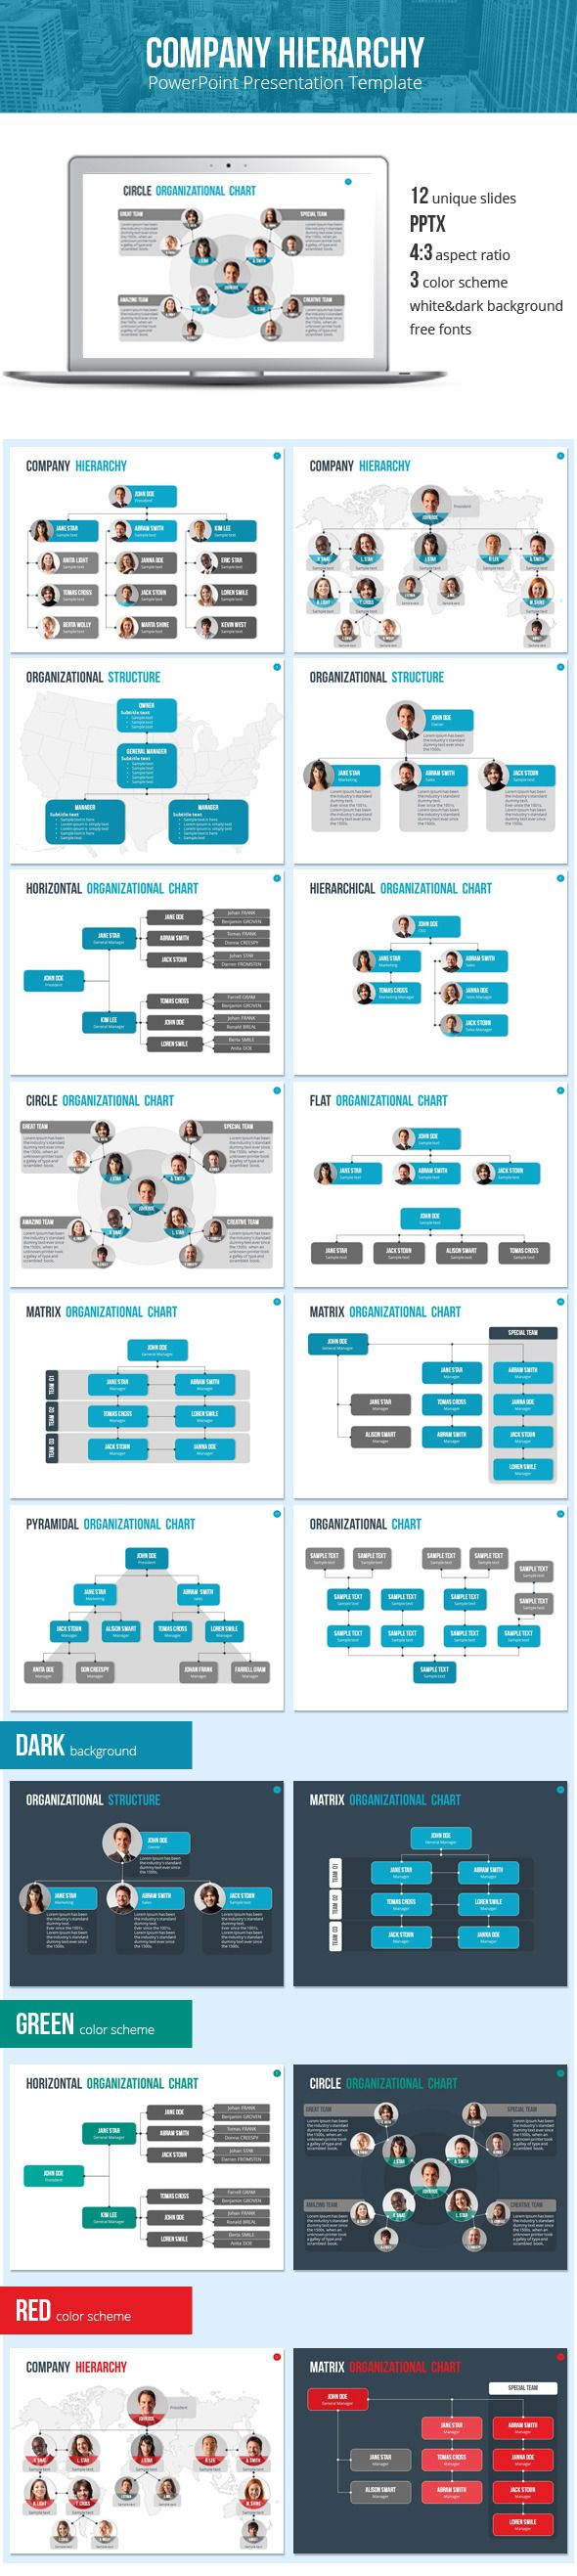 Organizational Chart And Hierarchy Template Business Powerpoint